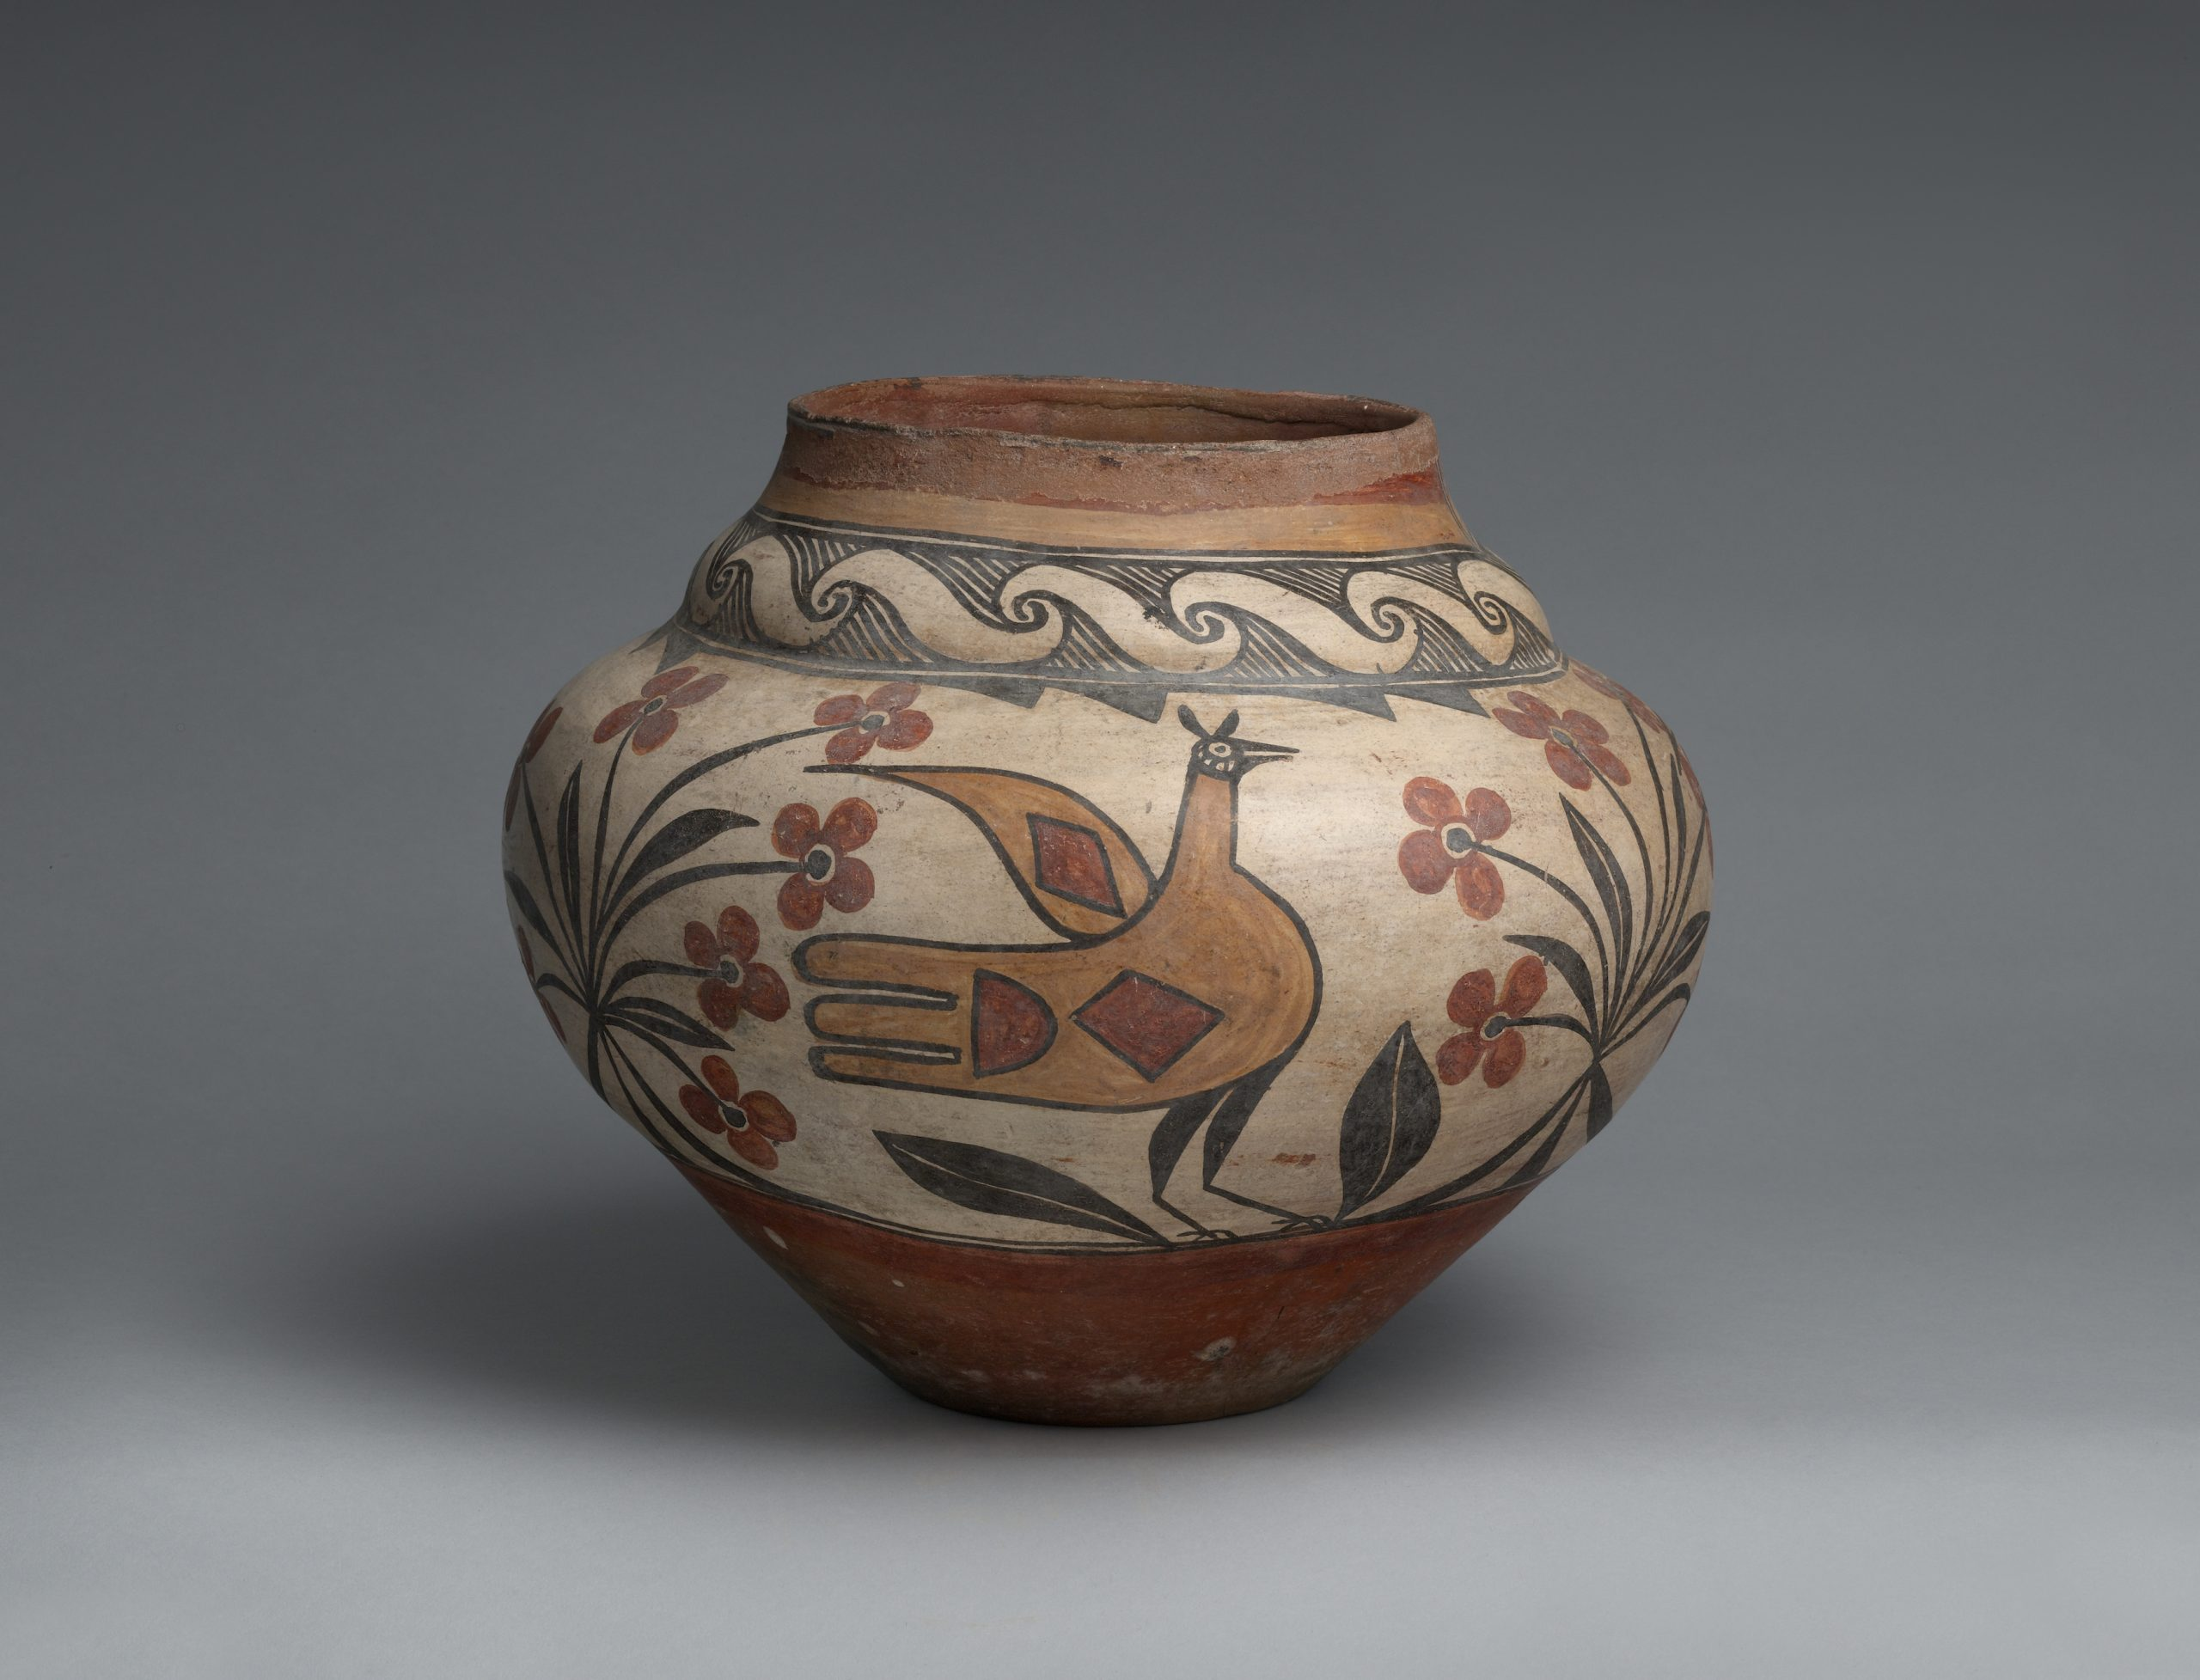 A Zia pot with a large bird and flowers painted in brown, red, and black.